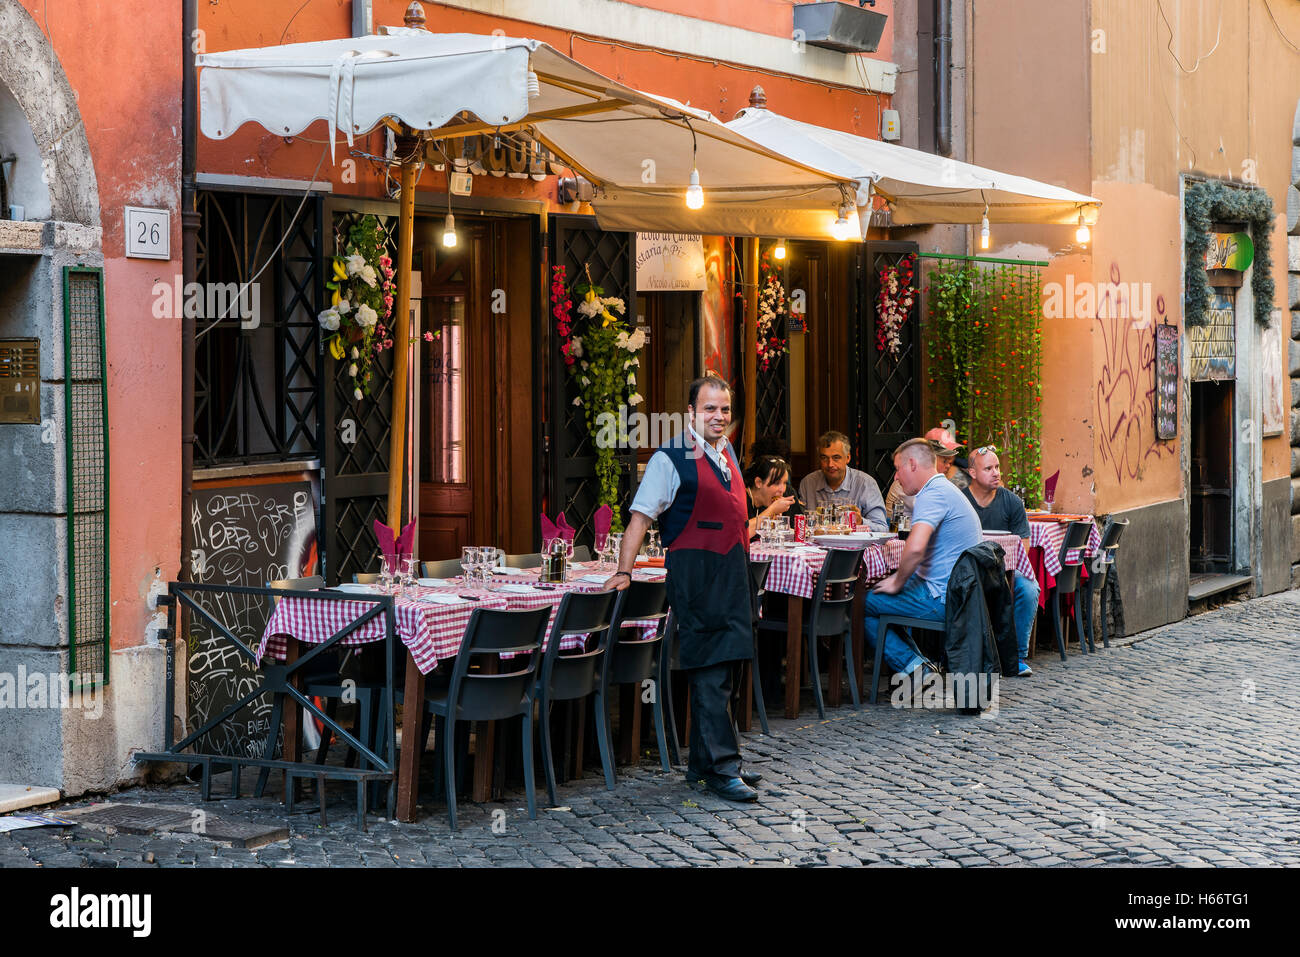 Tourists eating al fresco in a restaurant of Trastevere district, Rome, Lazio, Italy - Stock Image